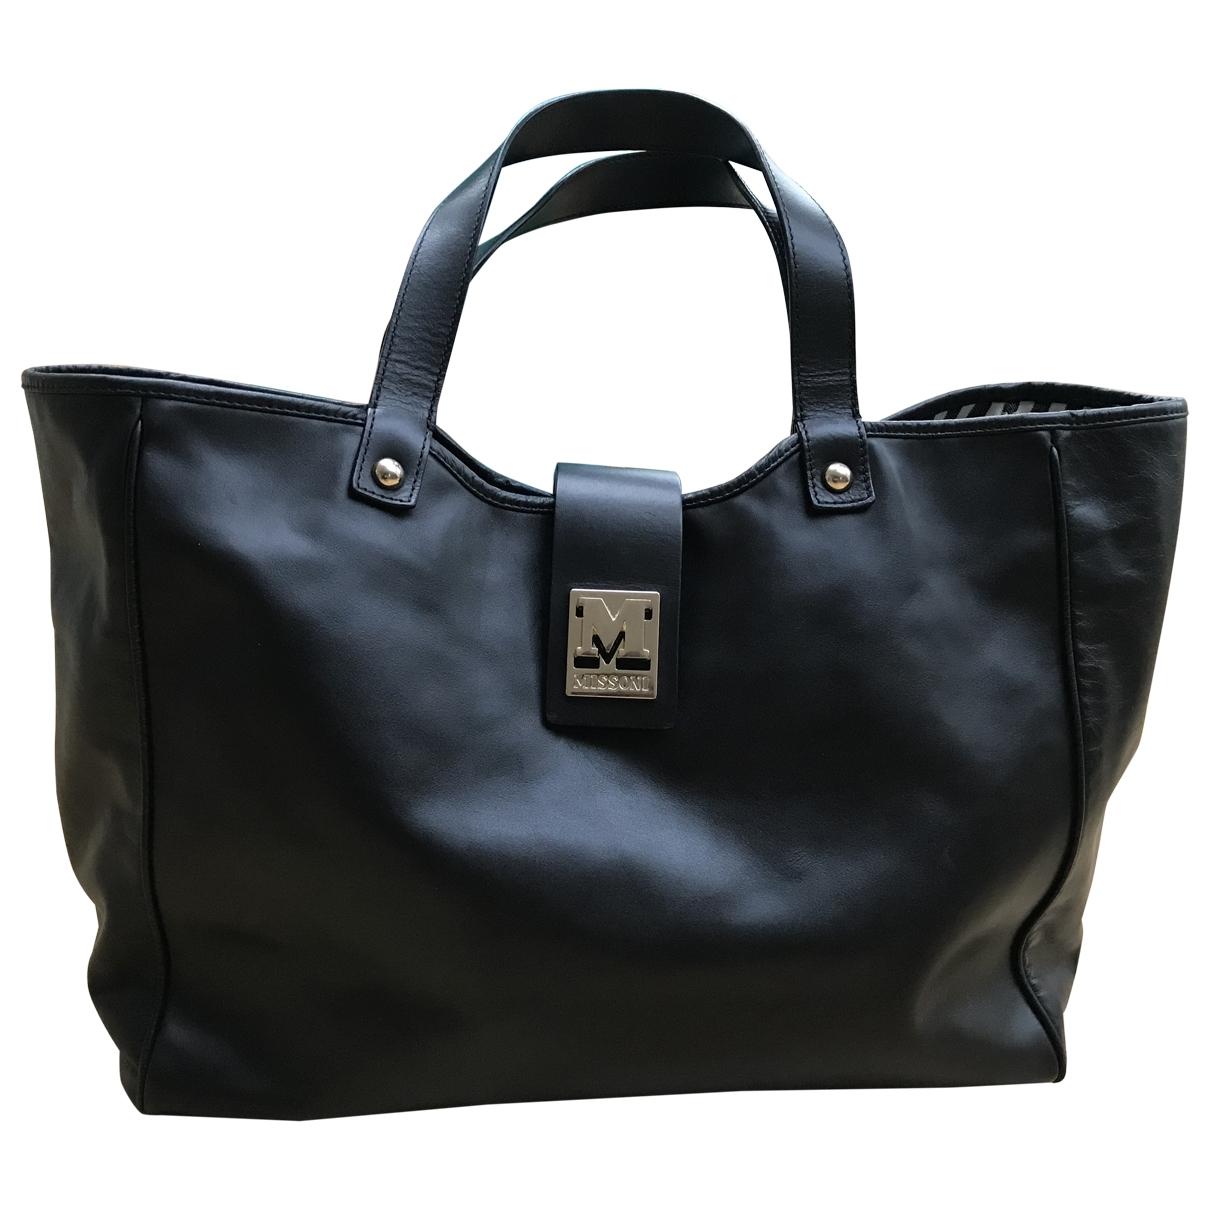 M Missoni \N Black Leather handbag for Women \N